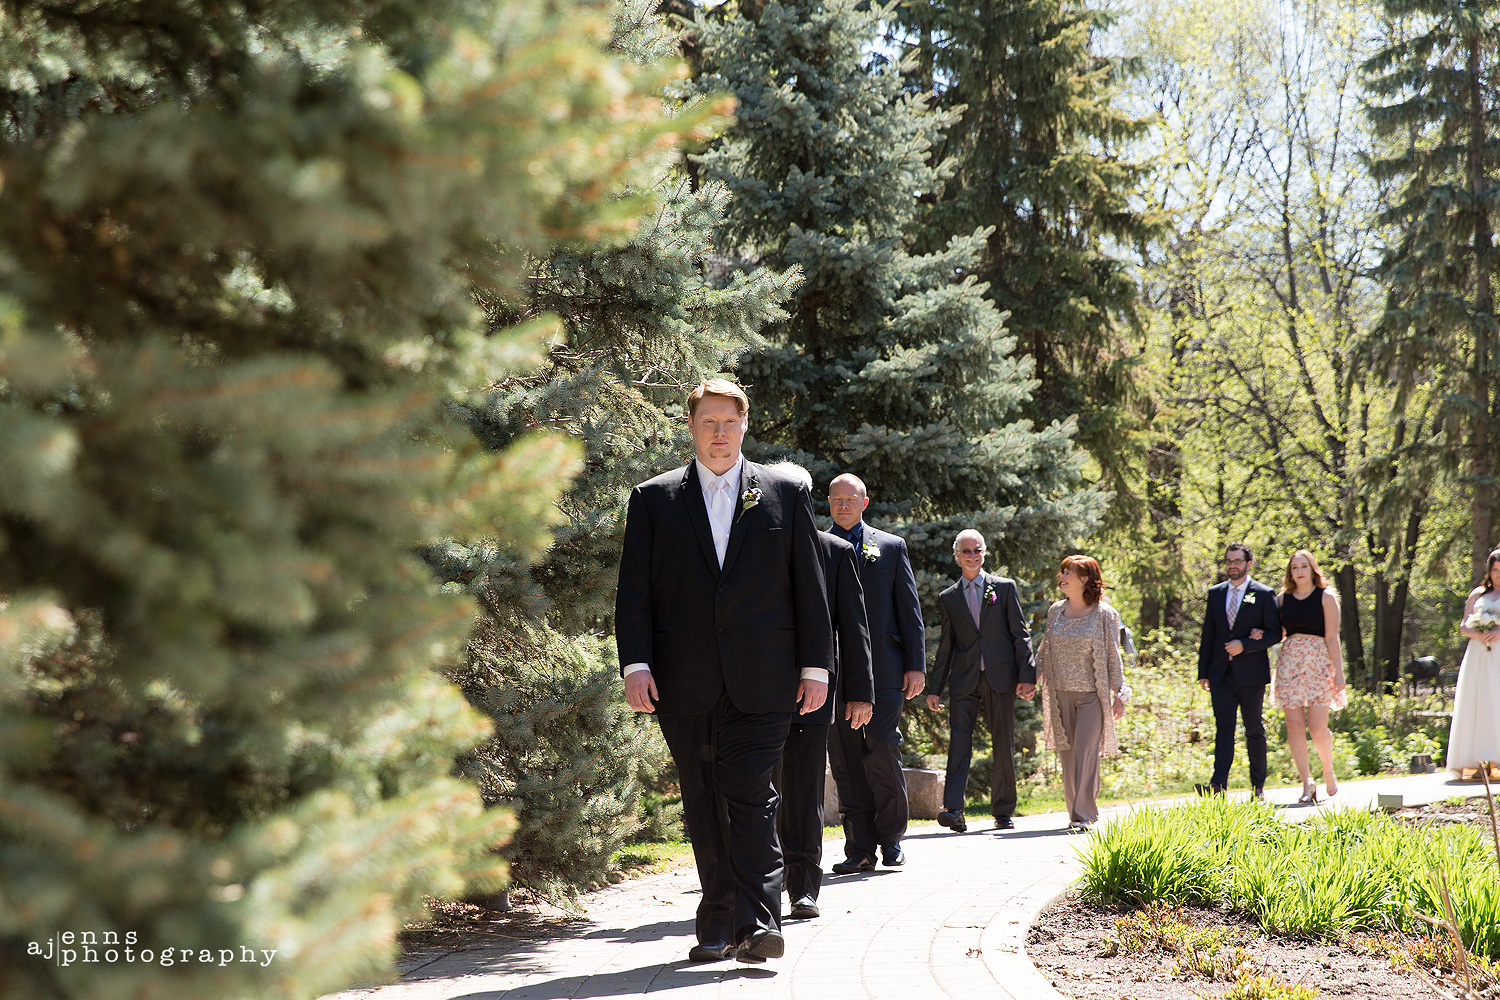 Jeremy walking down the path to the wedding ceremony